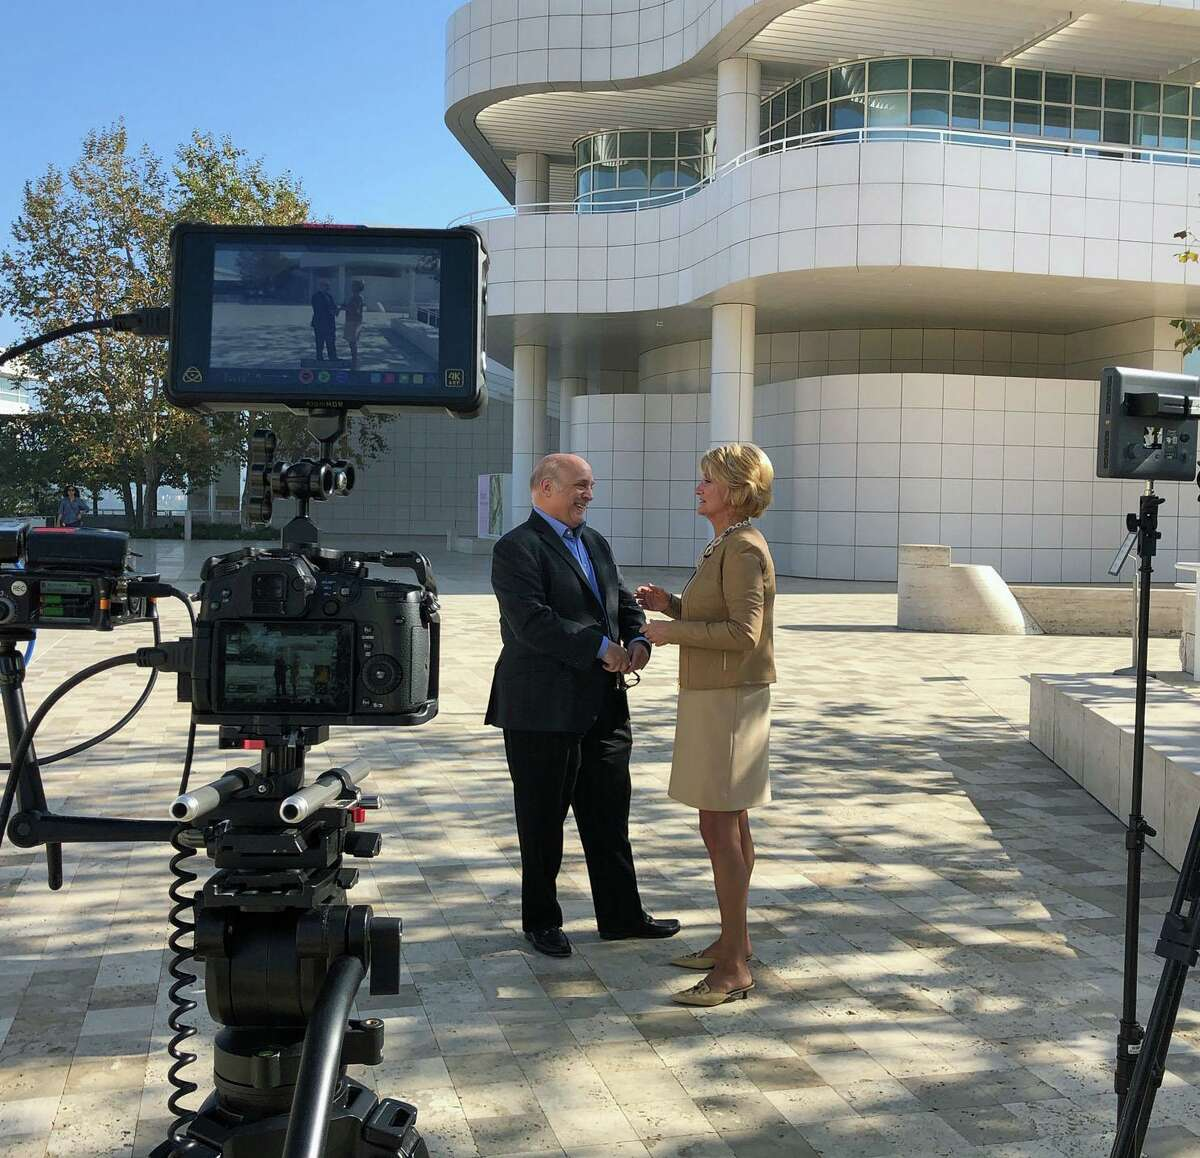 Leslie Mueller poses meets John Giurini, assistant director of public affairs at the J. Paul Getty Museum in Los Angeles.